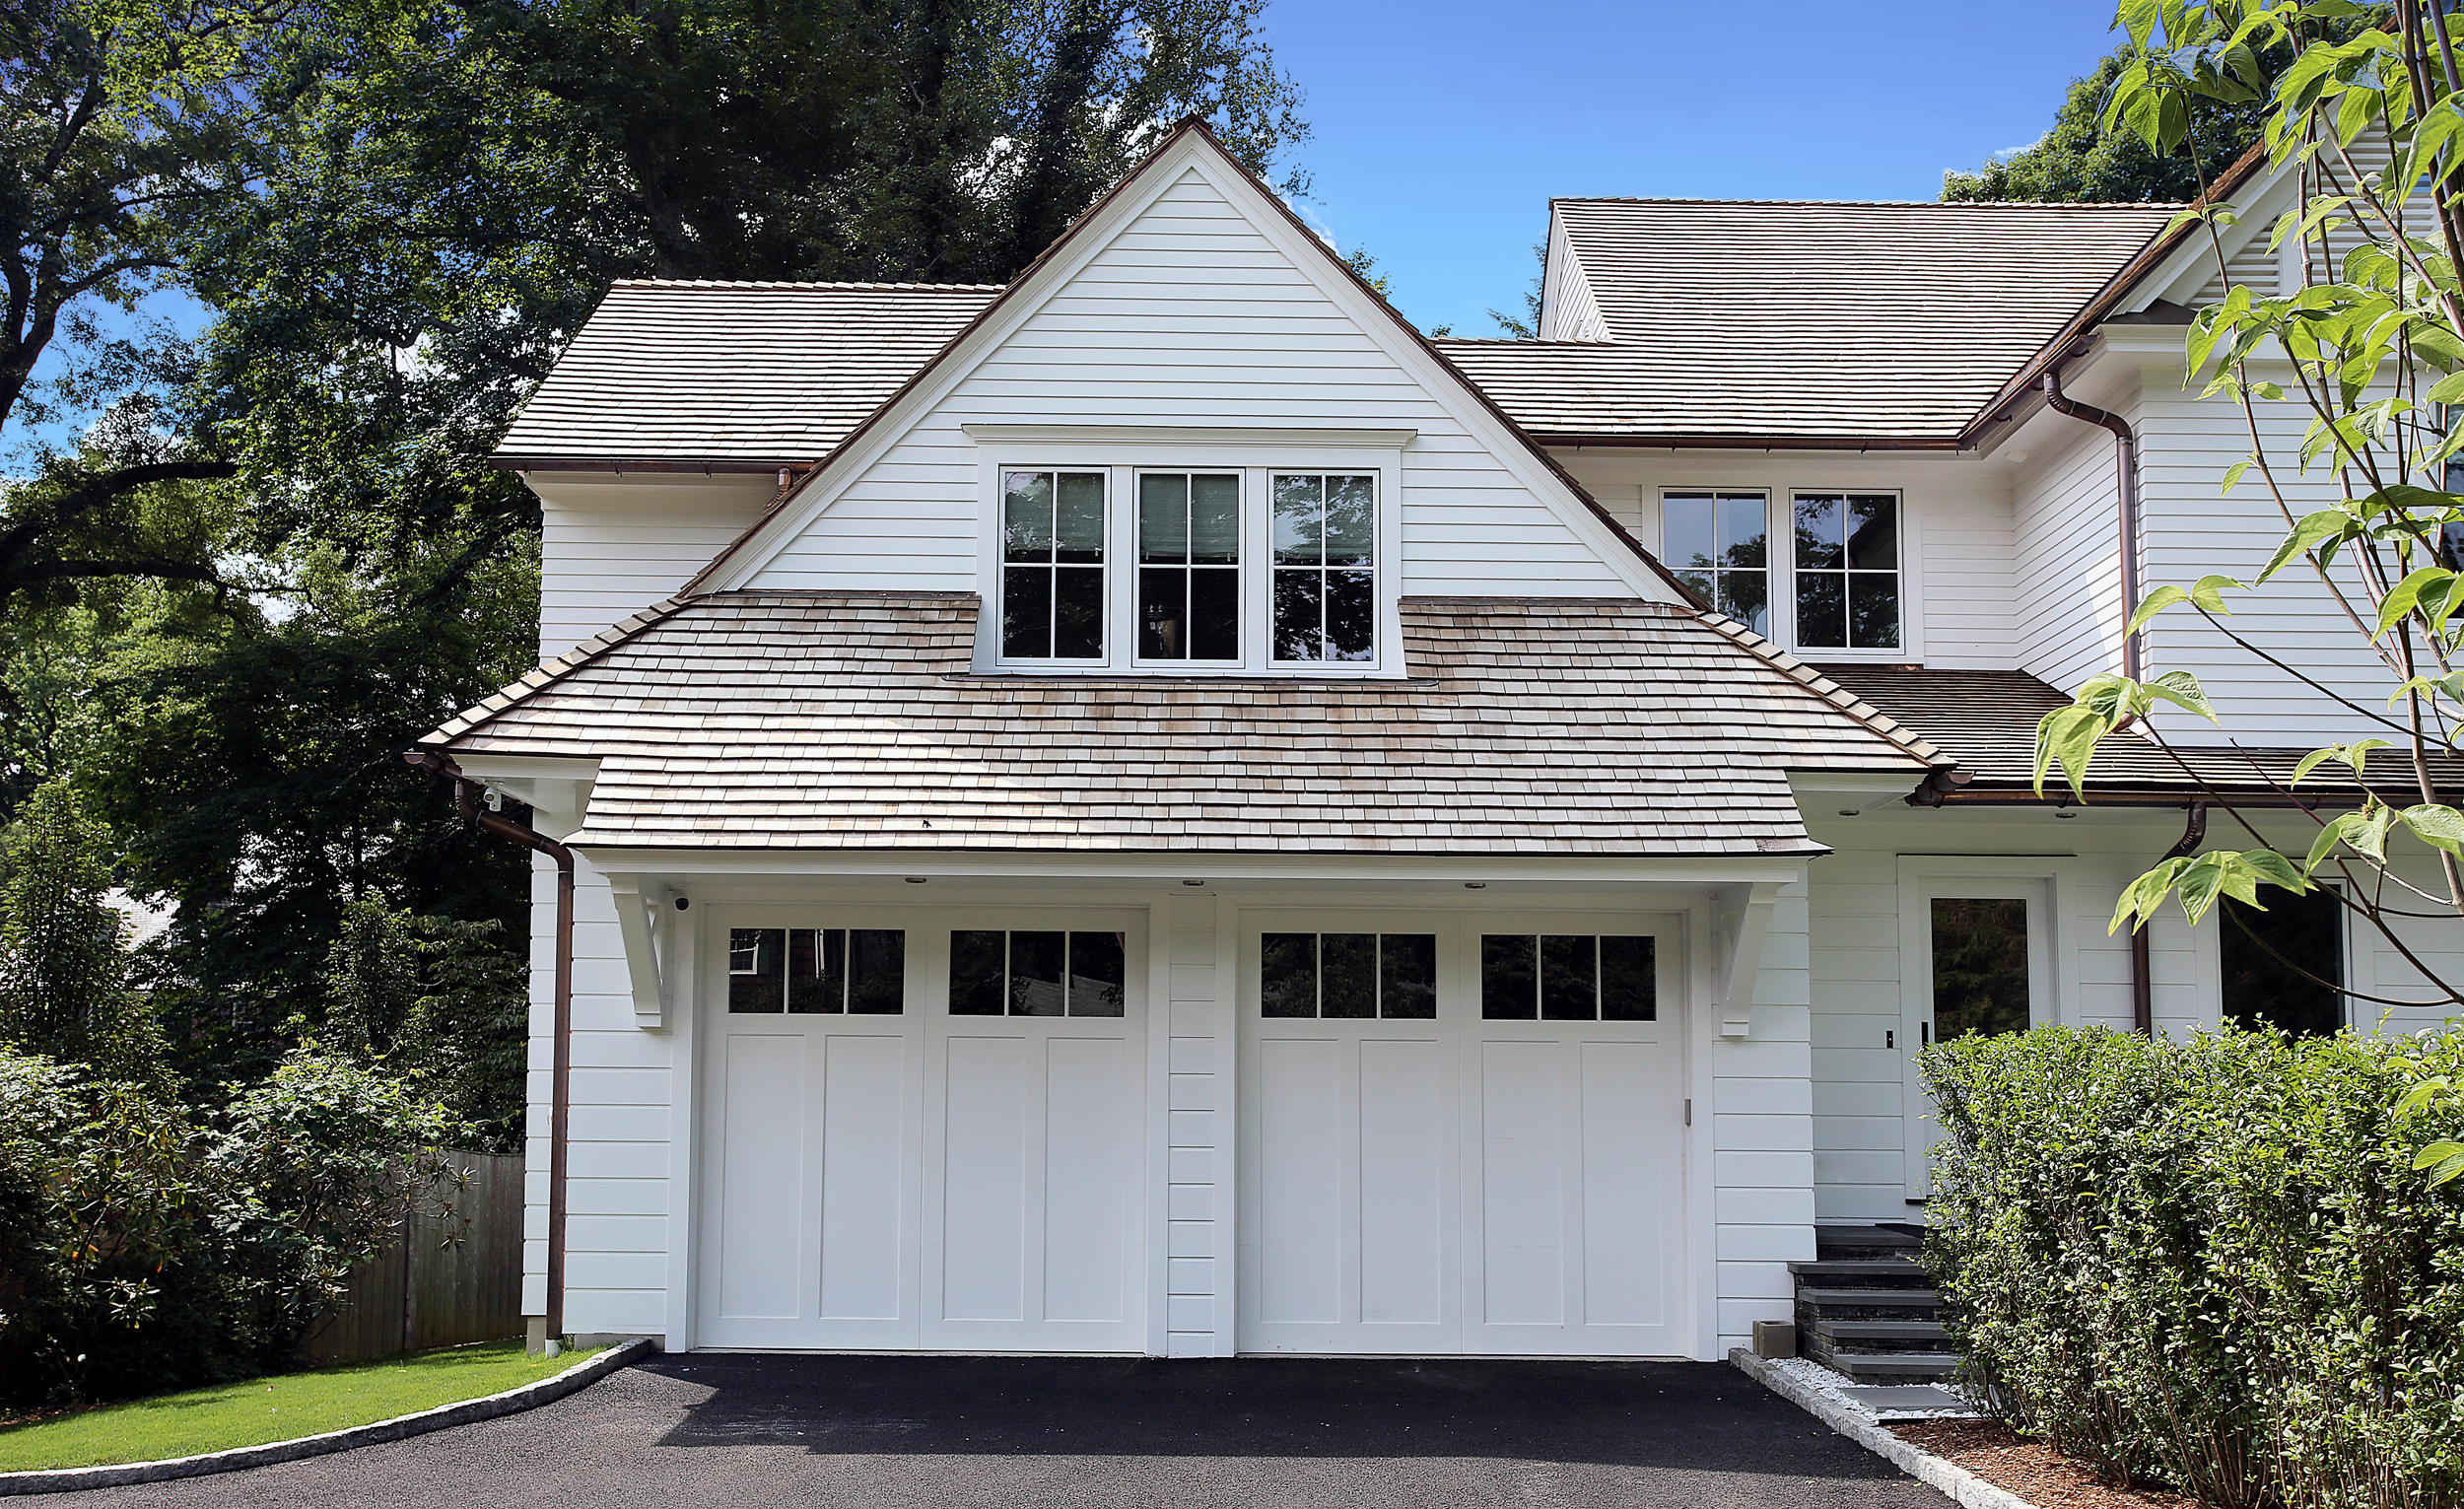 On the Garage portion of the front elevation, the louver panels were not used in the gable end and the entire roof form is dropped from the height of the other two gables.  This was done to de-emphasize this form - making the main block of the house the focal point from the street and visually reduces the overall bulk of the house along the streetscape.